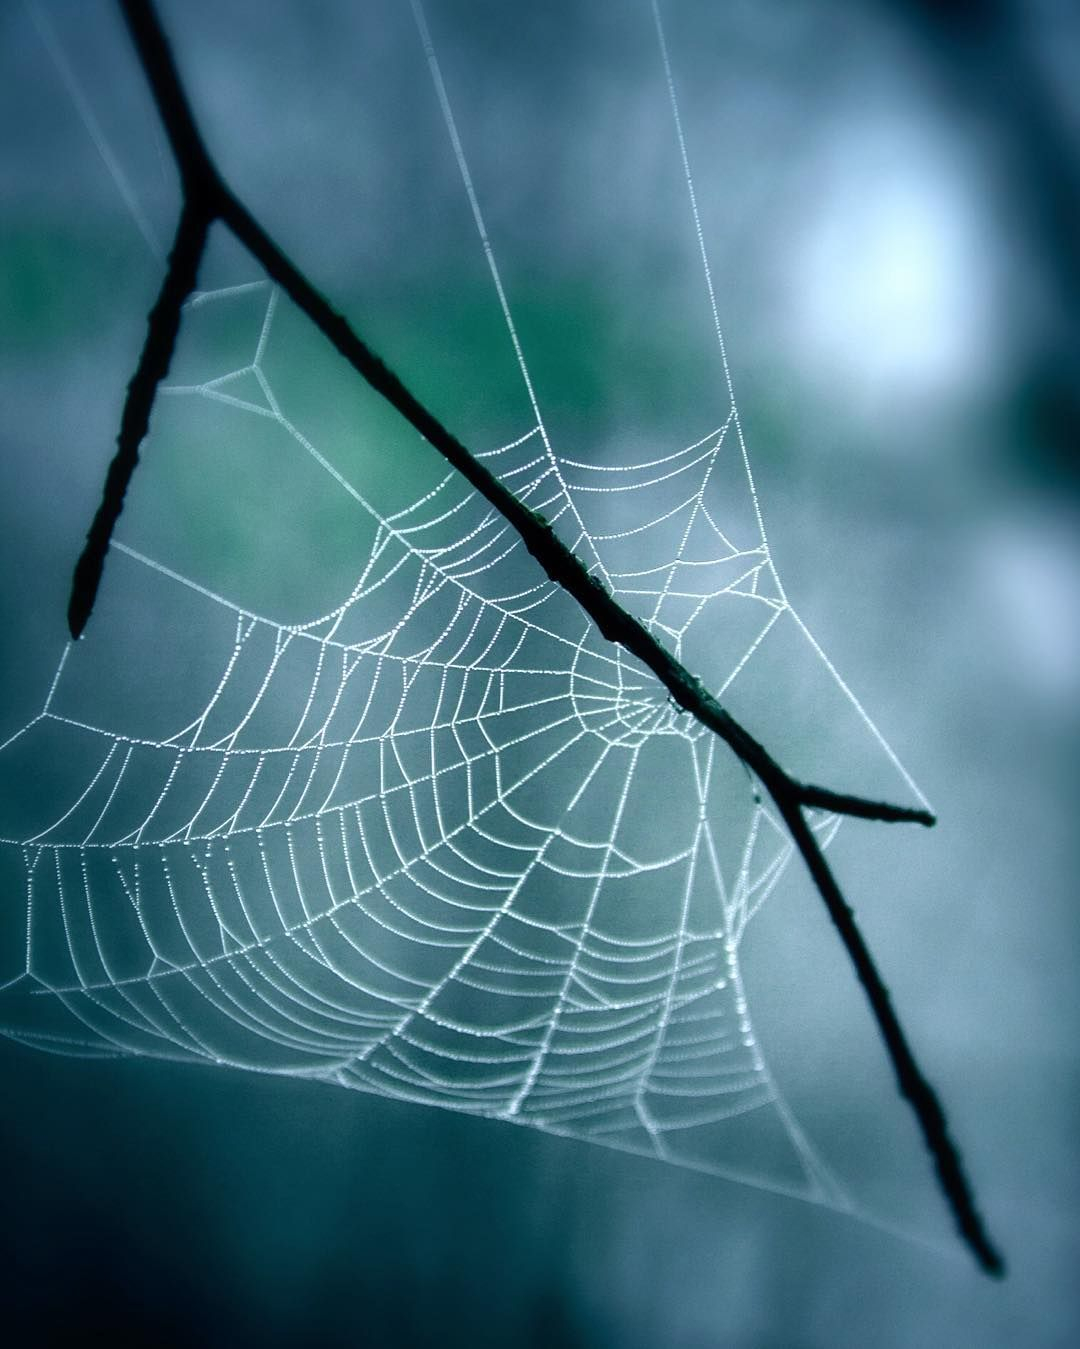 Itsy bitsy there's no spider  by dansade